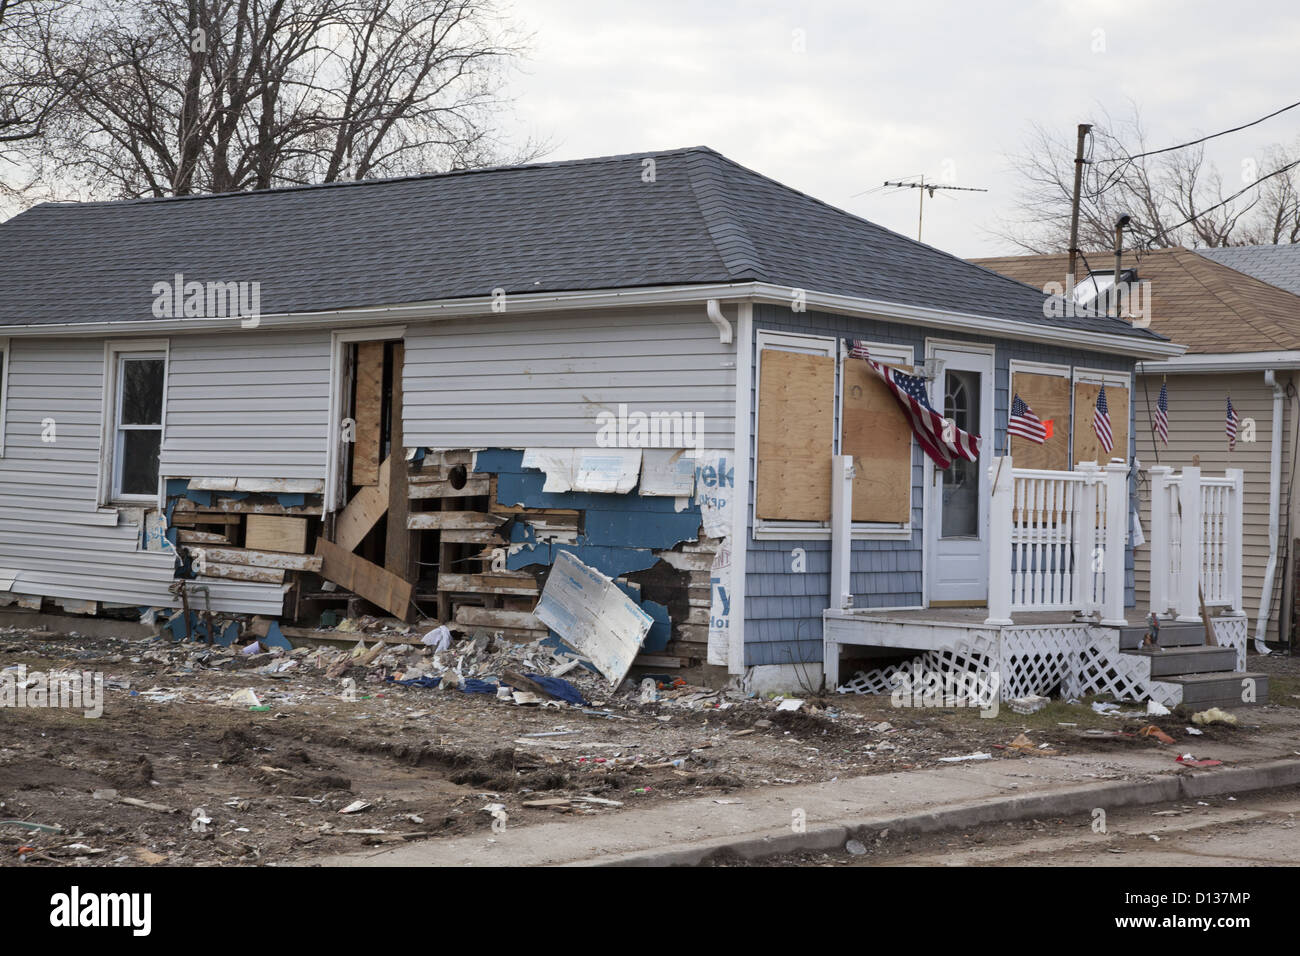 Homes damaged and or destroyed by Hurricane Sandy along the Jersey Shore. Monmouth County, NJ - Stock Image